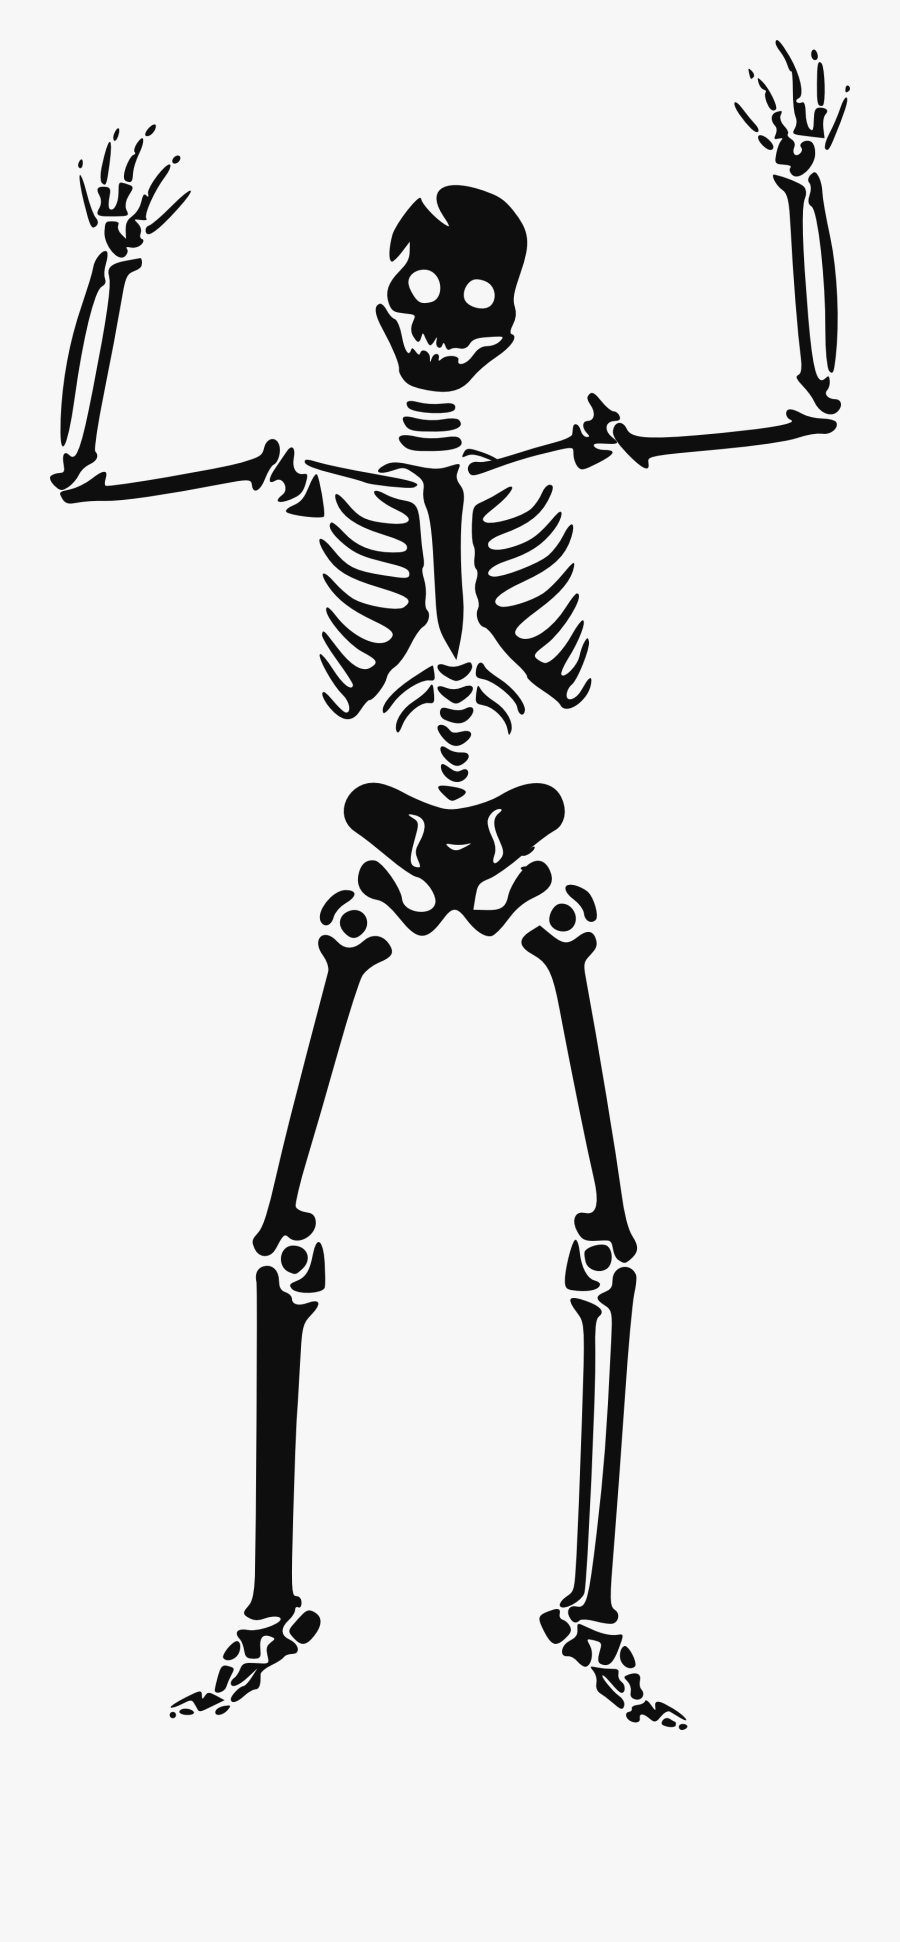 Skeleton Clipart Transparent - Halloween Clipart Skeleton, Transparent Clipart